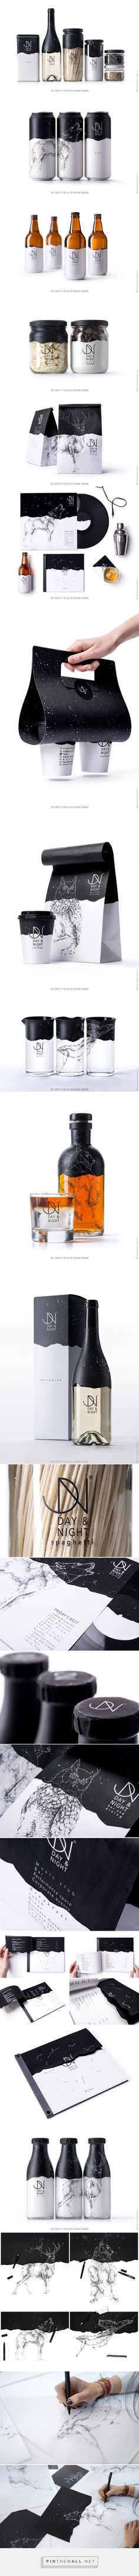 Day & Night packaging designed by Backbone Branding (Armenia) - http://www.packagingoftheworld.com/2016/03/day-night.html: